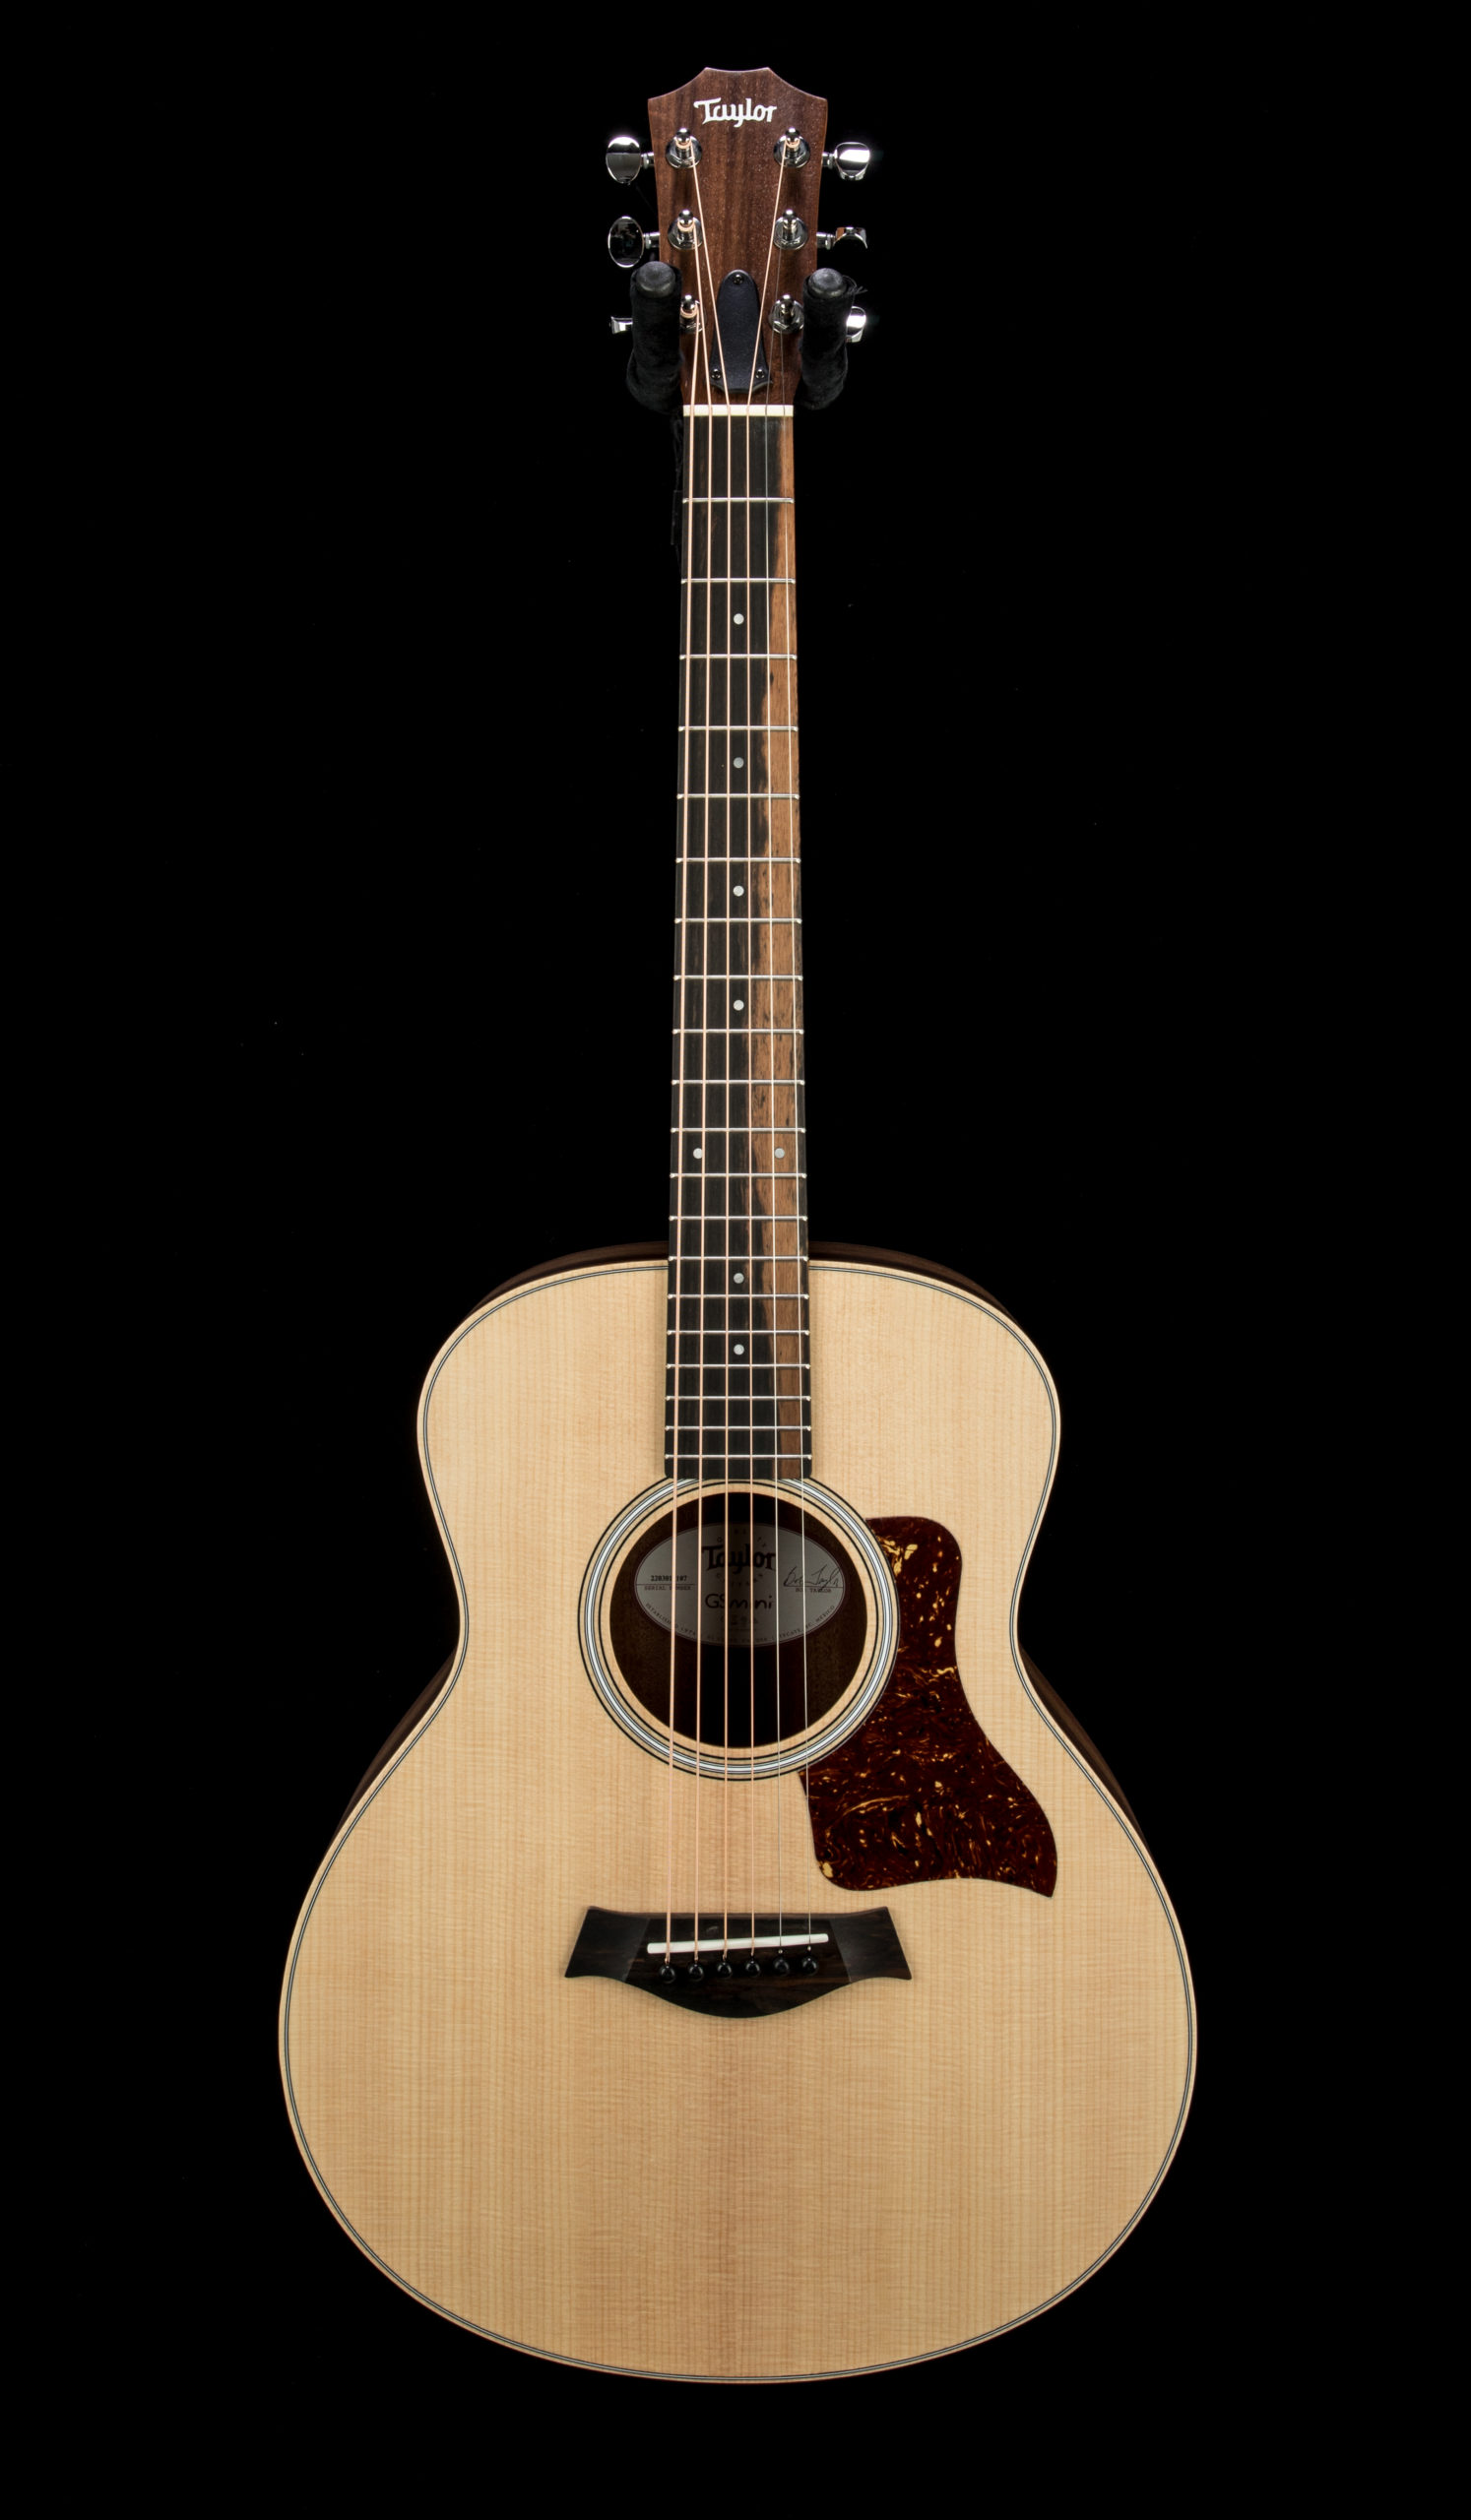 Taylor Gs Mini Rosewood #2203011107 Front